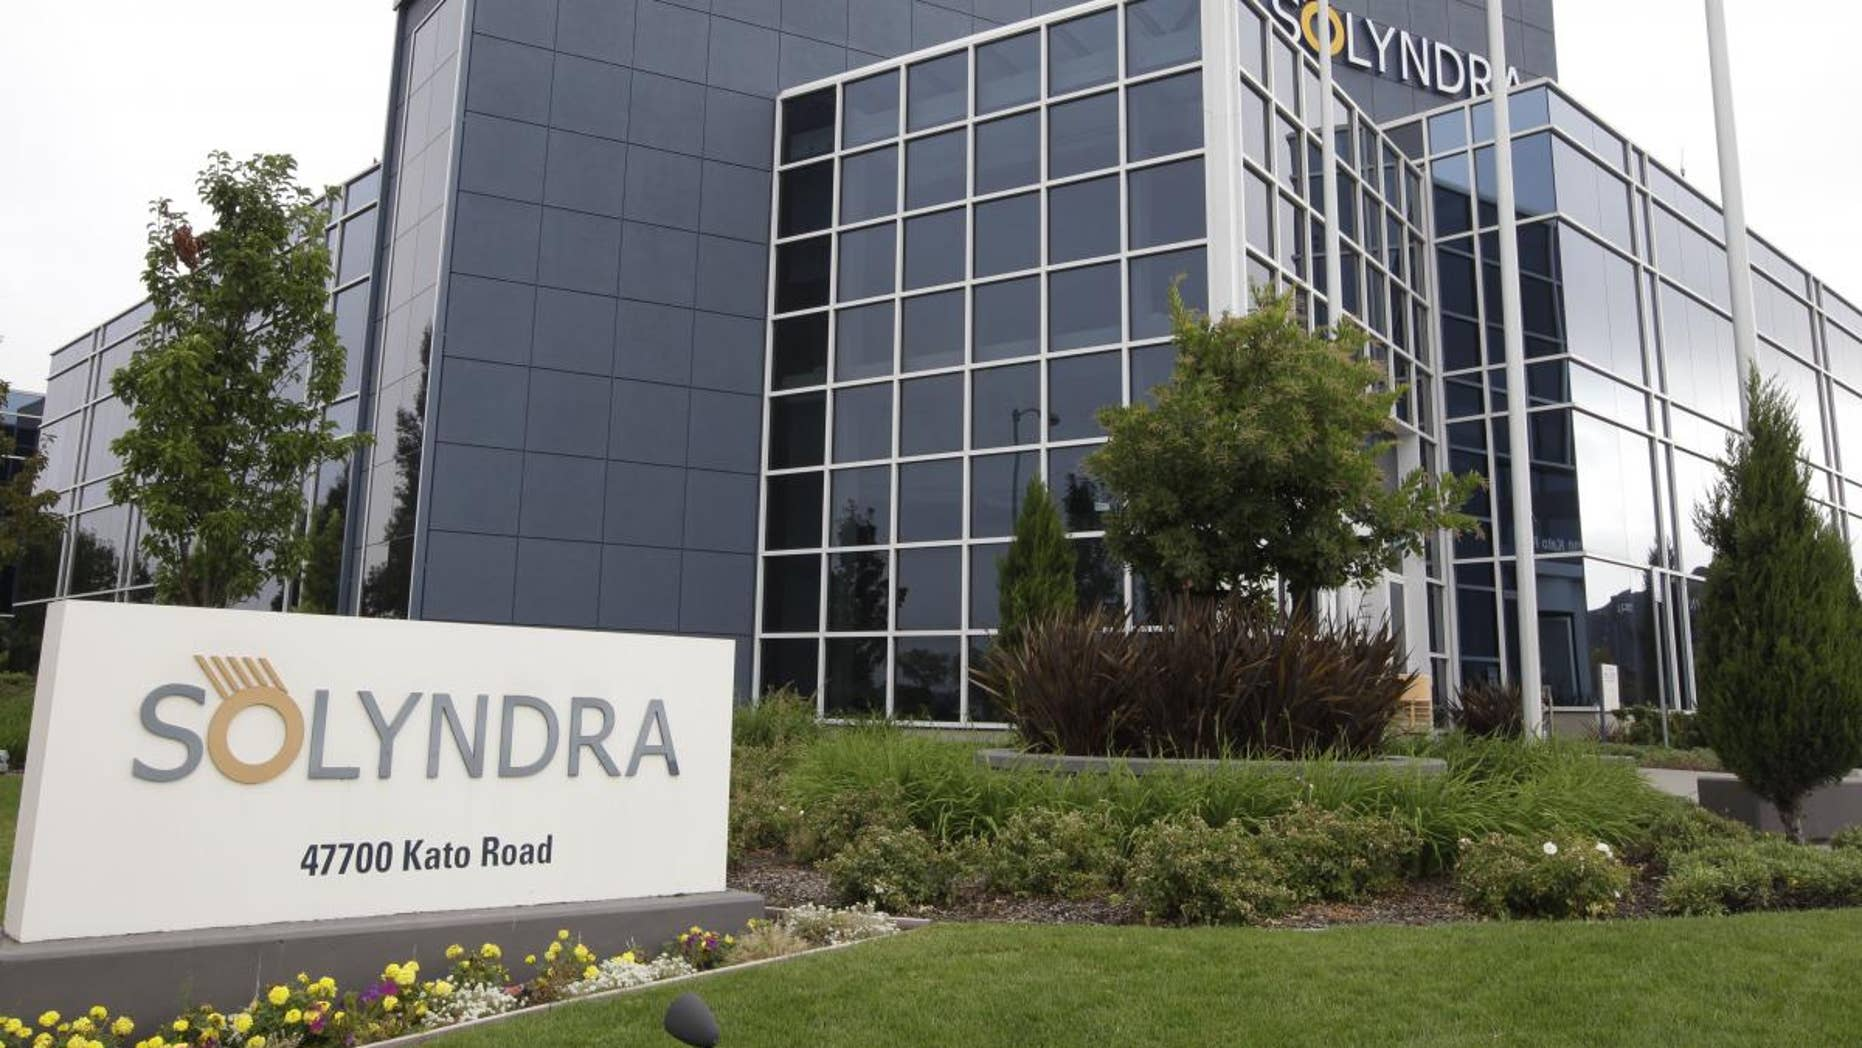 This photograph shows exterior view of Solyndra headquarters in Fremont, Calif., Thursday, Sept. 8, 2011. The FBI are executing search warrants at the headquarters of California solar firm Solyndra that received a $535 million loan from the federal government. (AP Photo/Paul Sakuma)